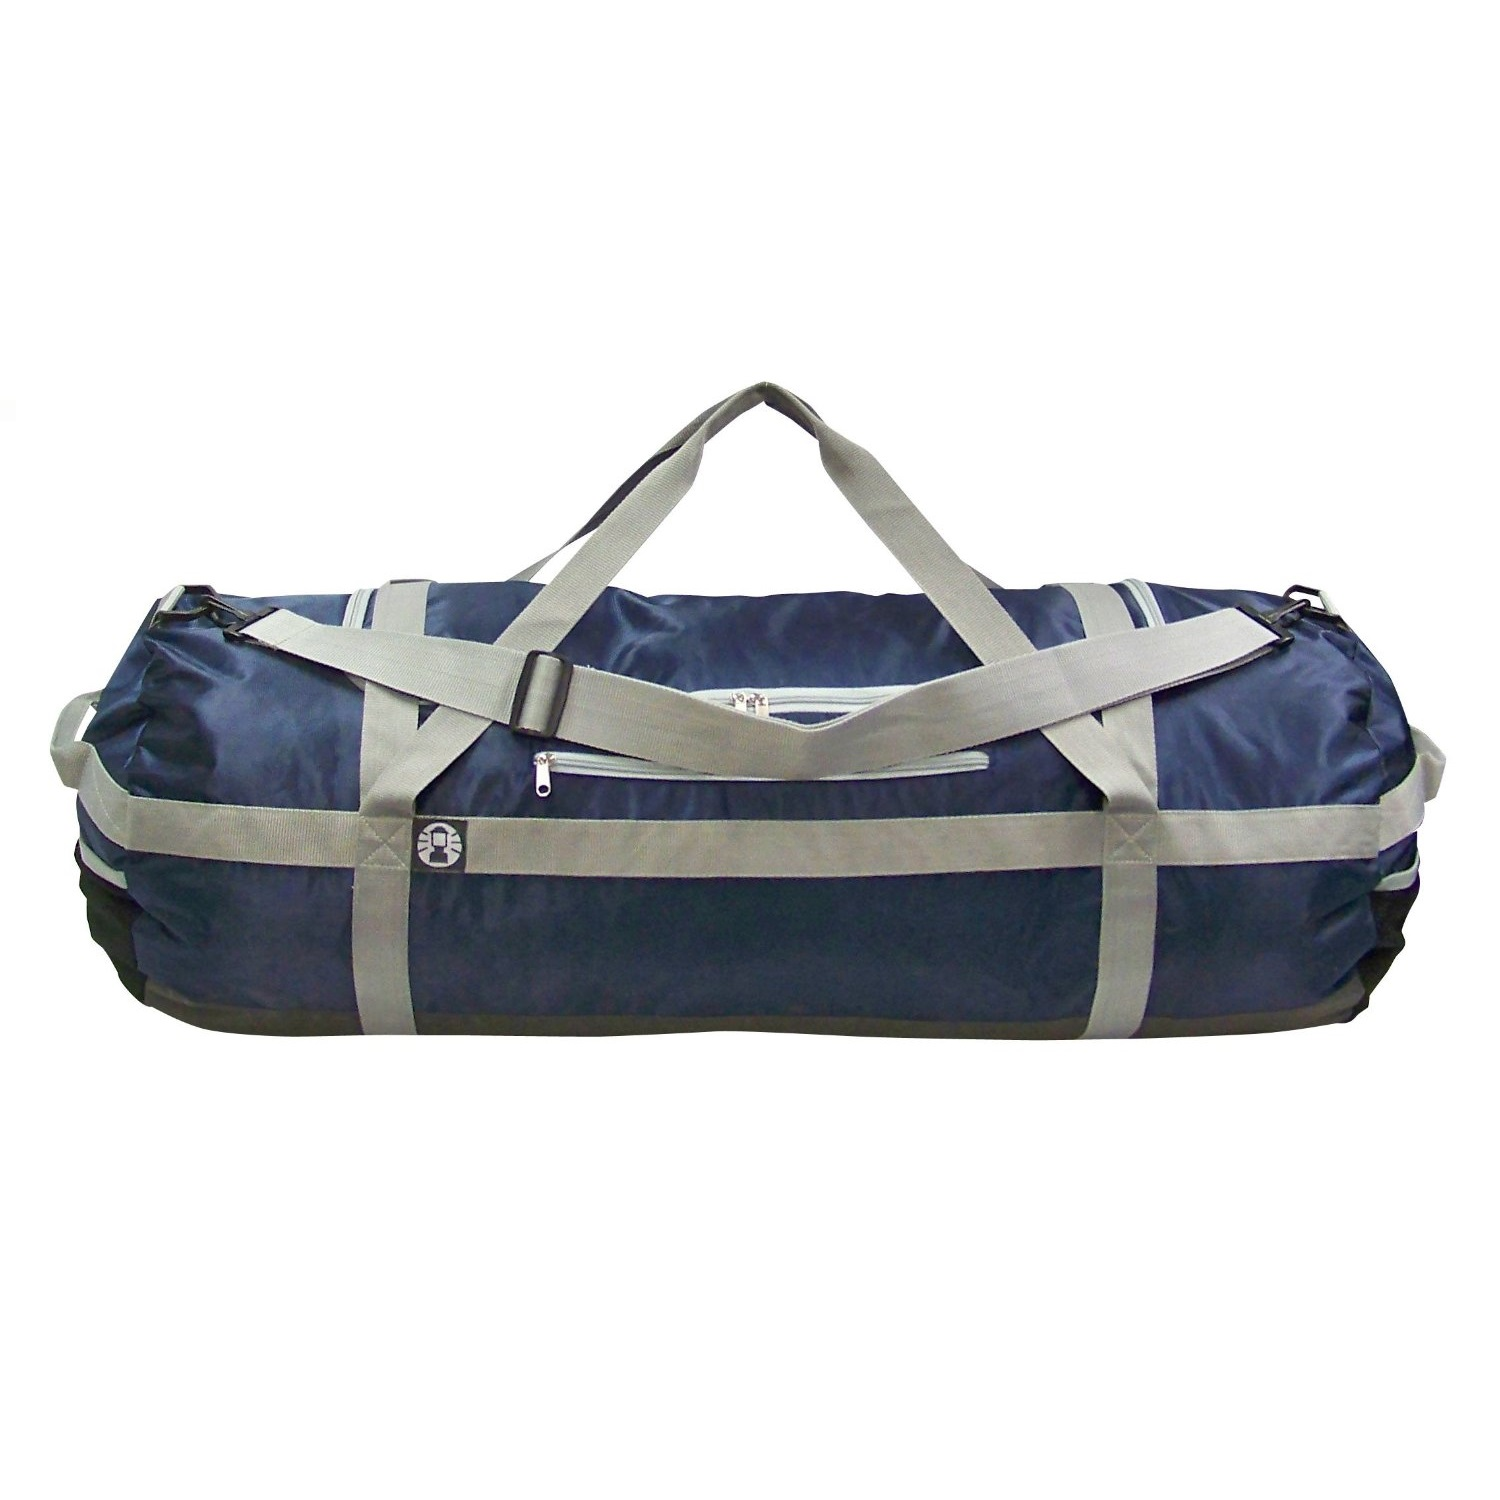 Coleman outdoor gear duffle bag 36x14 in navy gry 2000016511 for Fishing bags walmart